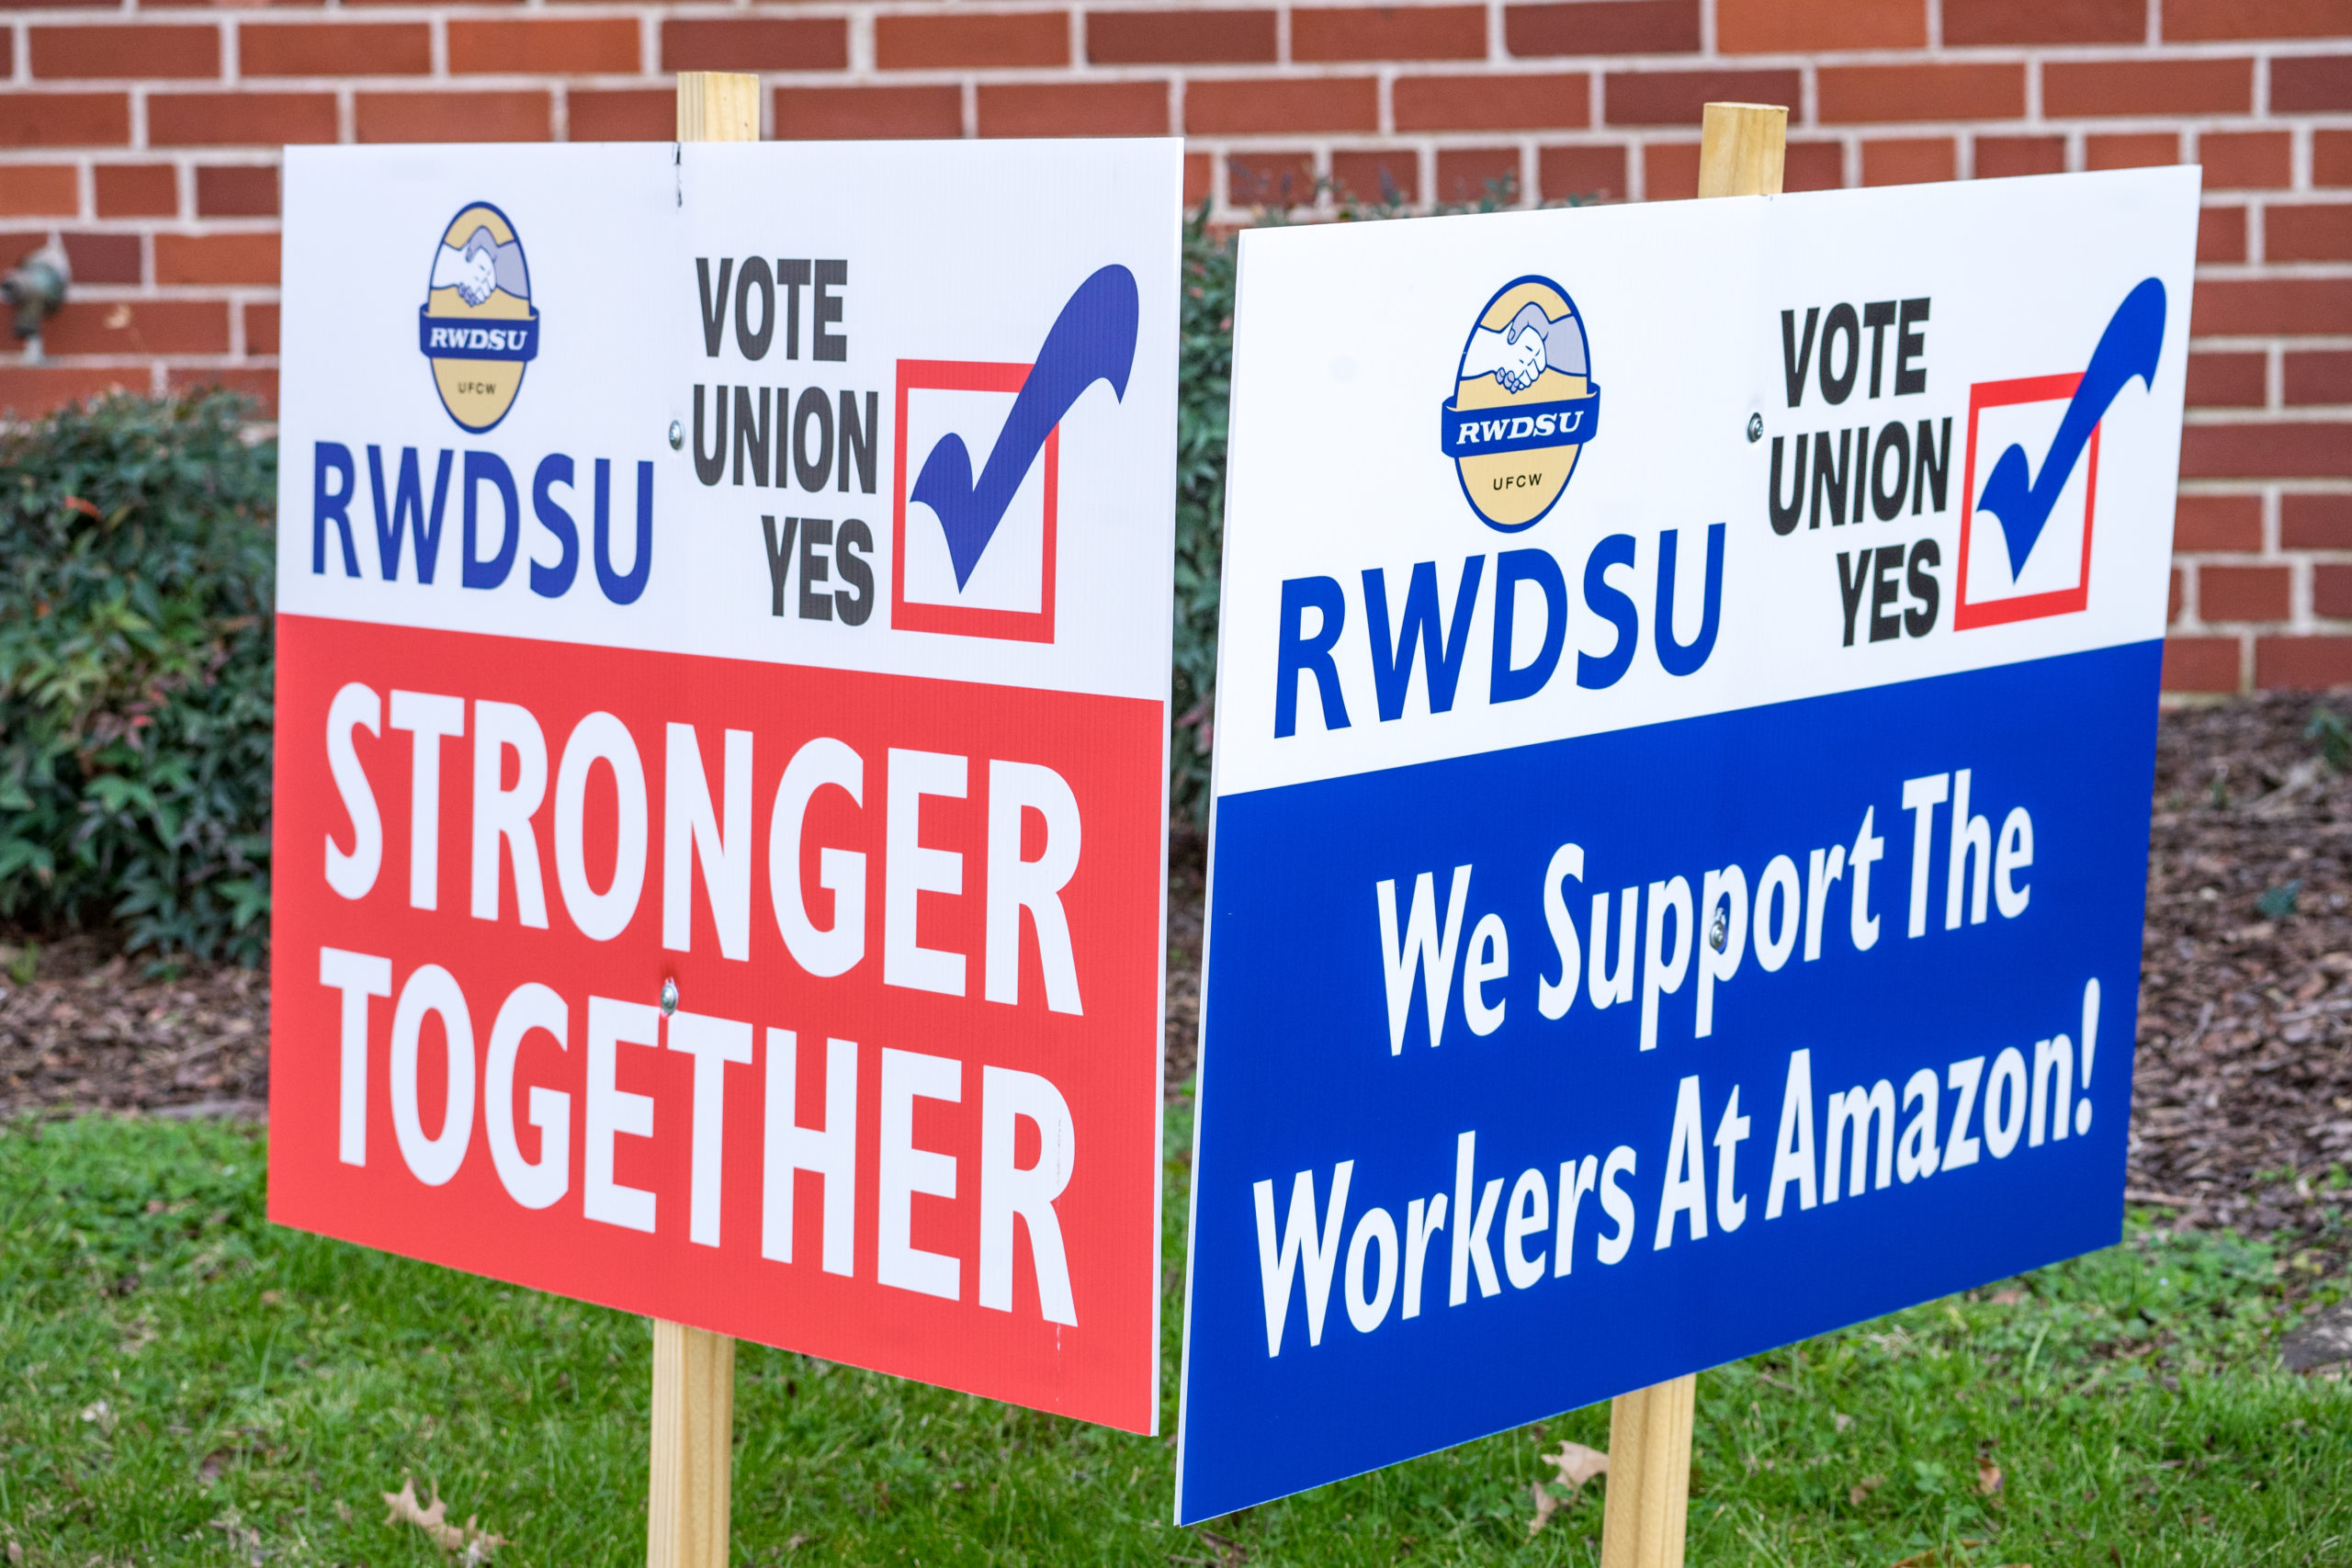 Pro-unionization signs are pictured on March 5 outside of Amazon's Bessemer, Alabama facility. (Megan Varner/Getty Images)